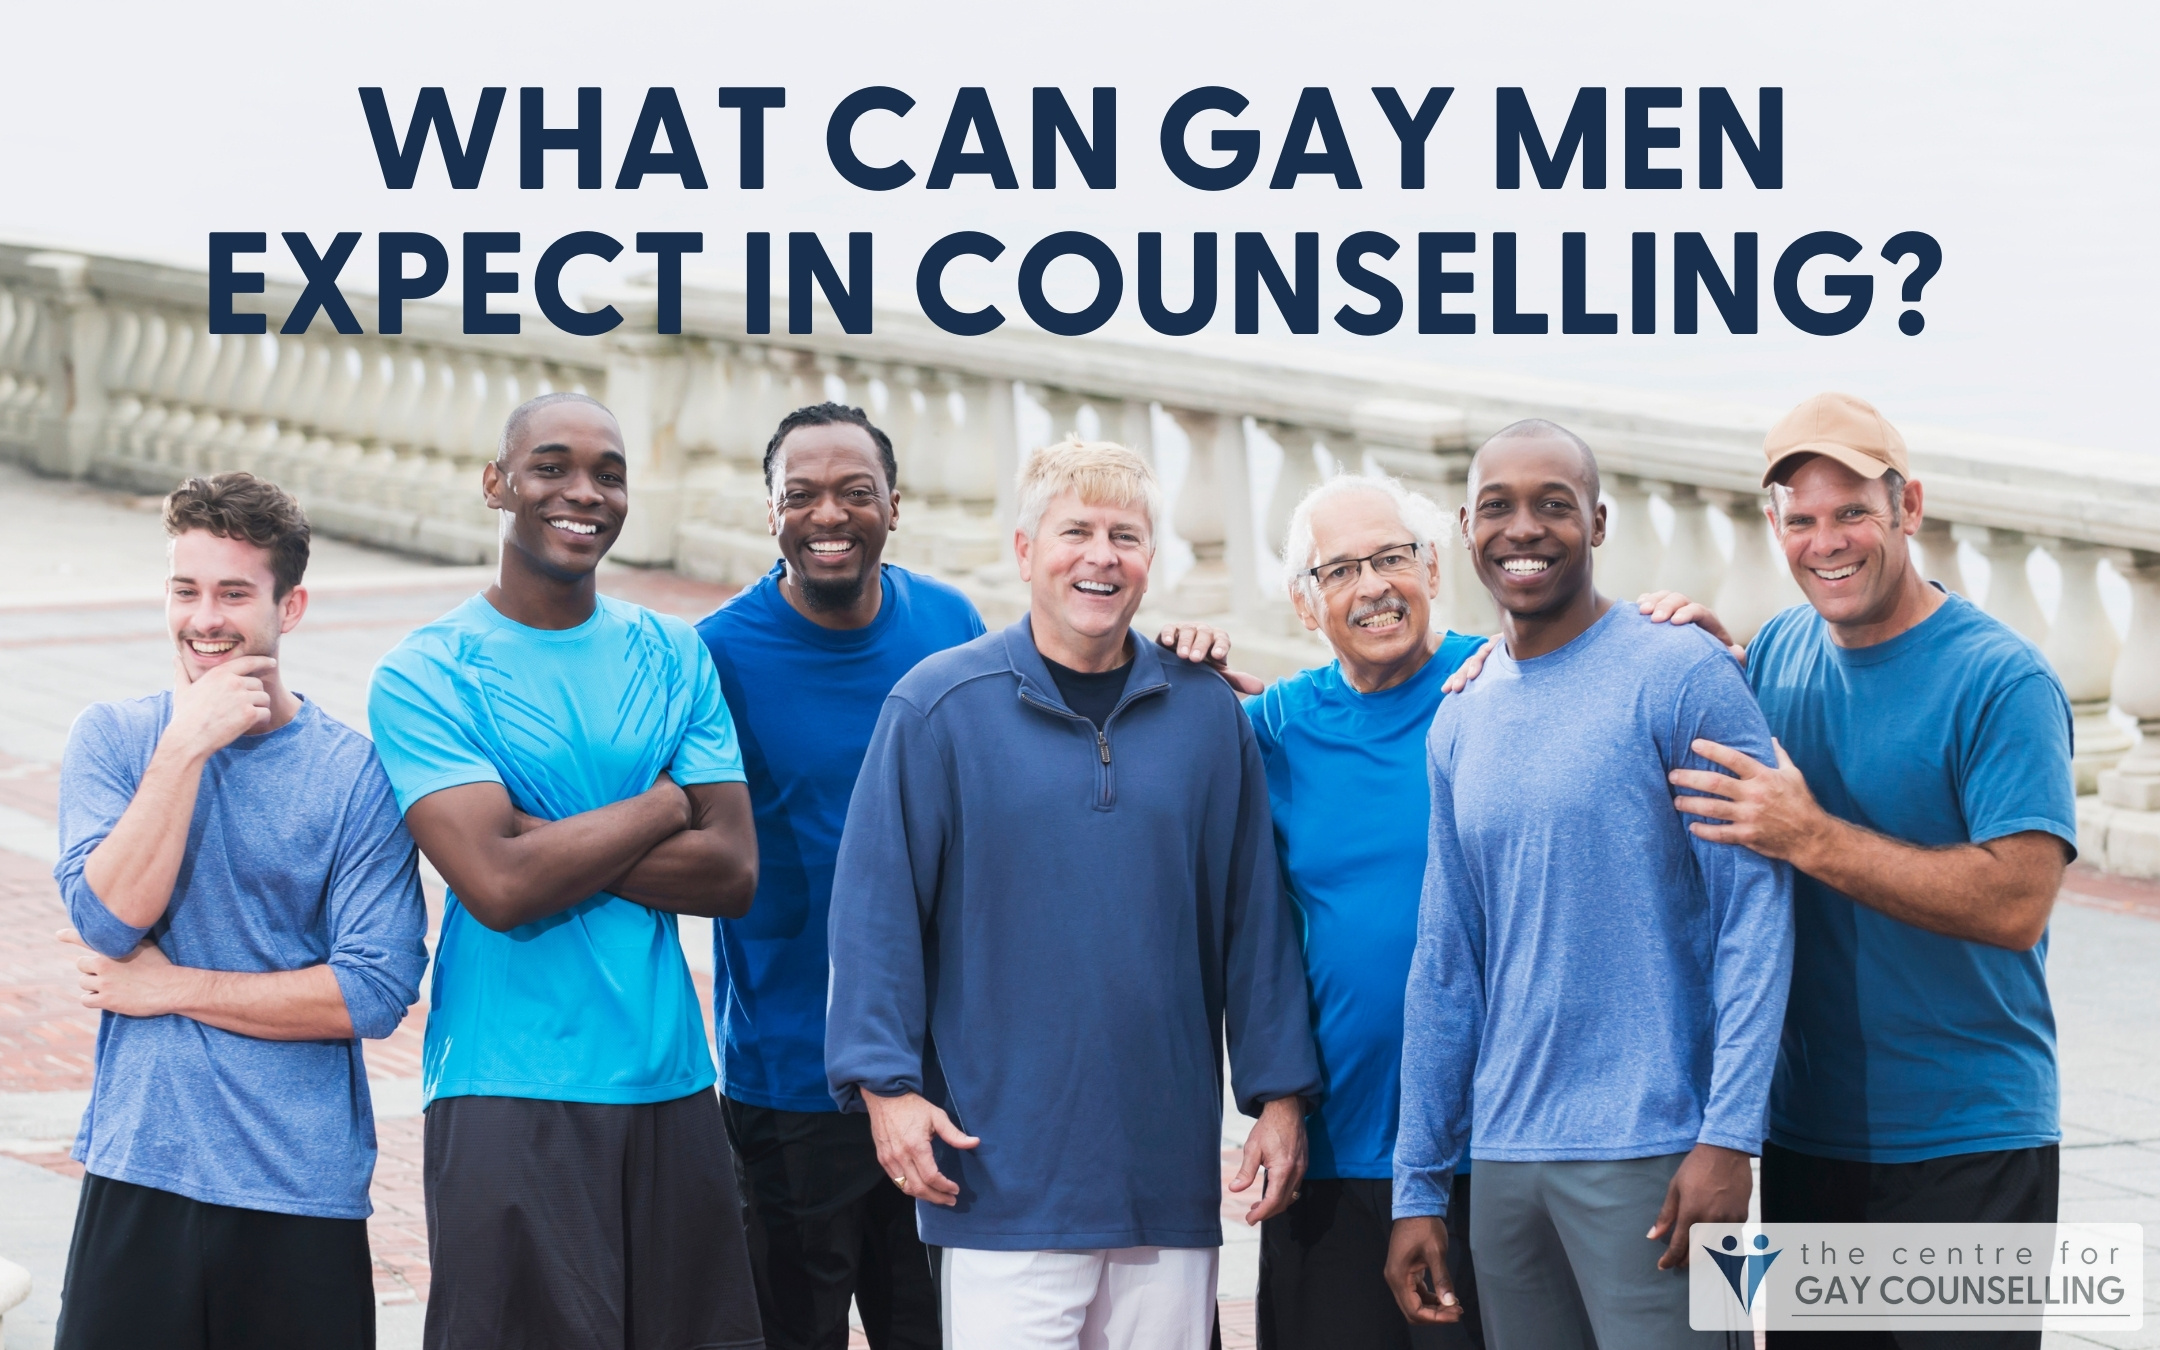 gay counselling psychotherapy therapy mental health Canada what to expect